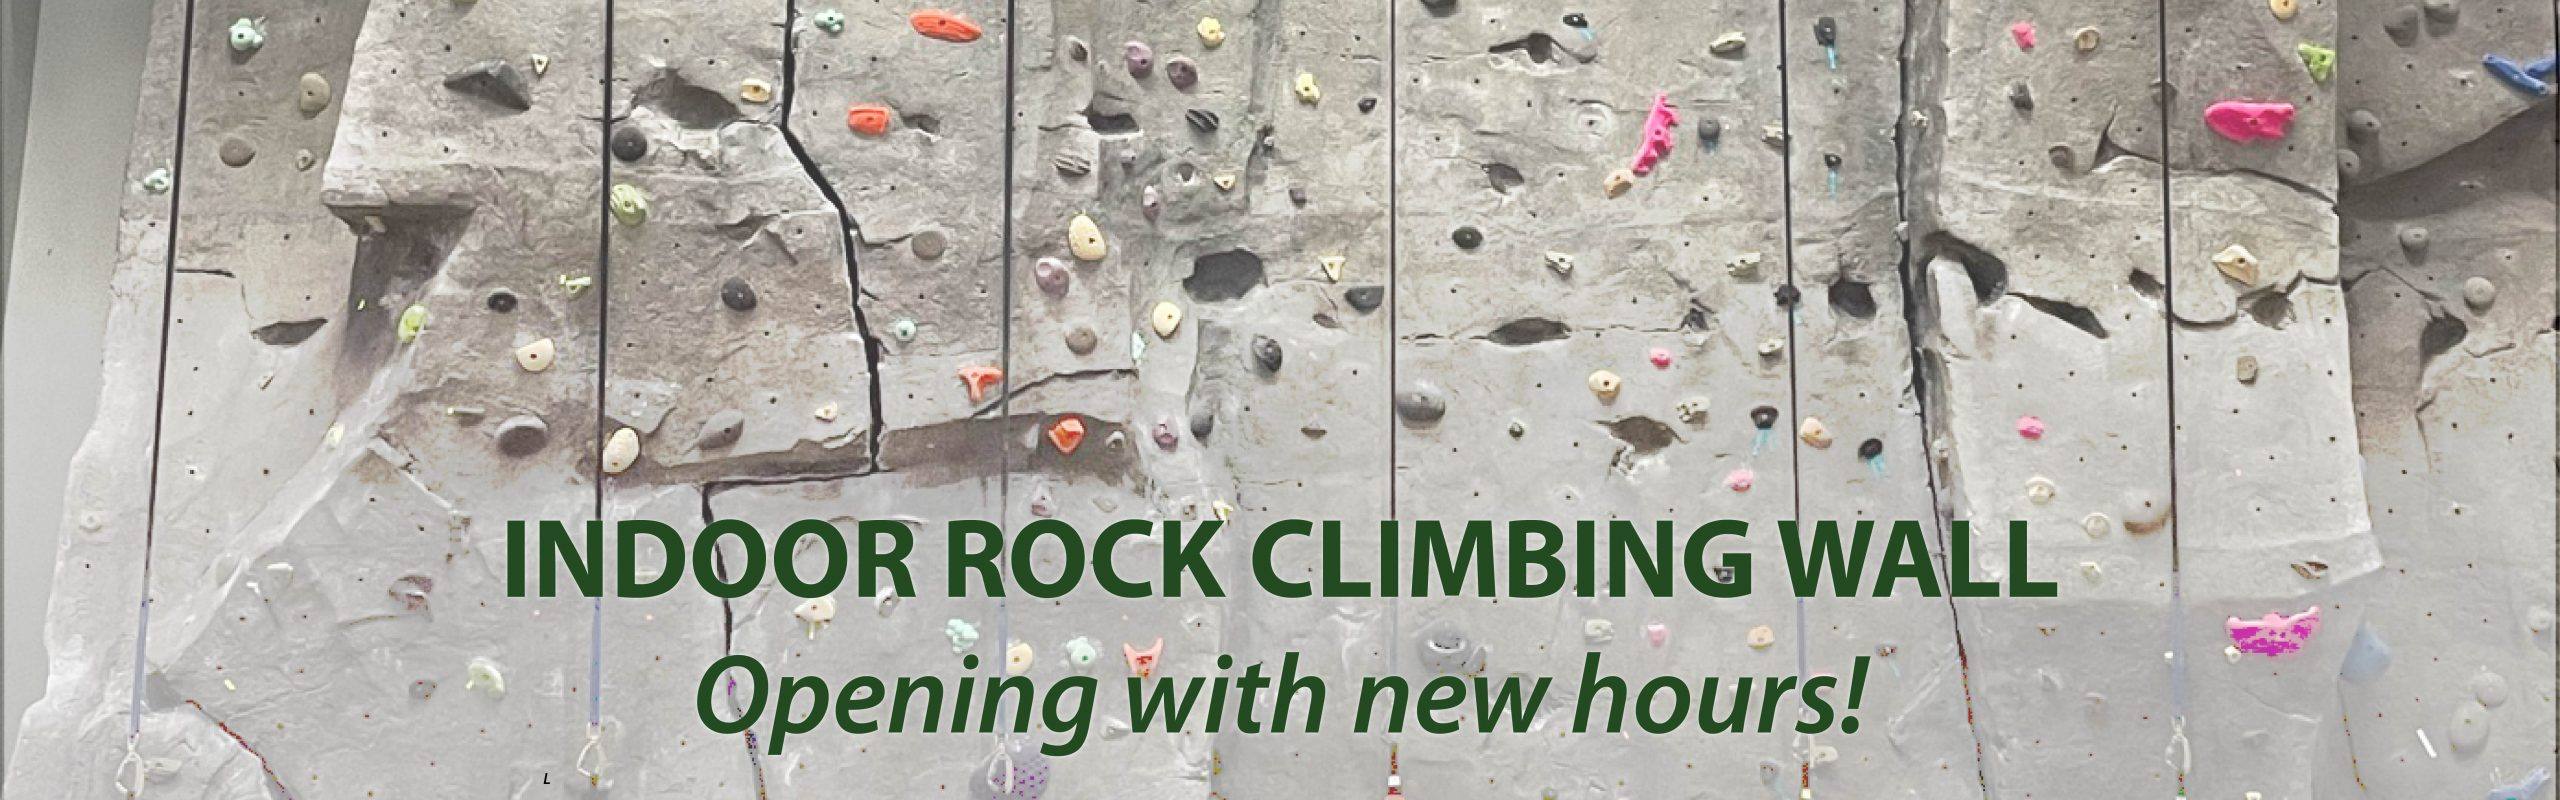 Rock Climbing Wall Open With New Hours!